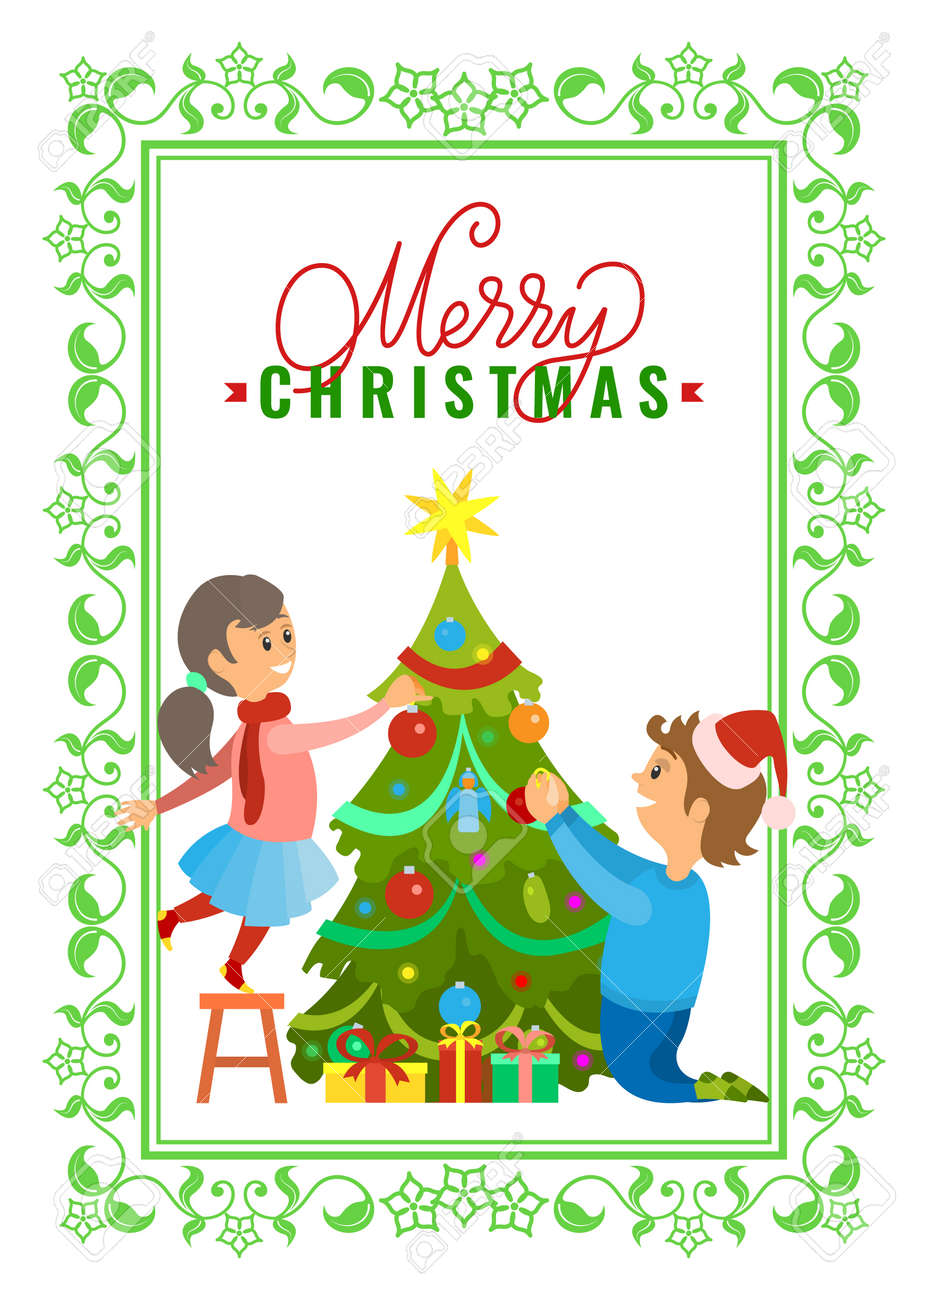 Christmas Wishes Card.Greeting Card Merry Christmas Wishes Boy And Girl Decorating